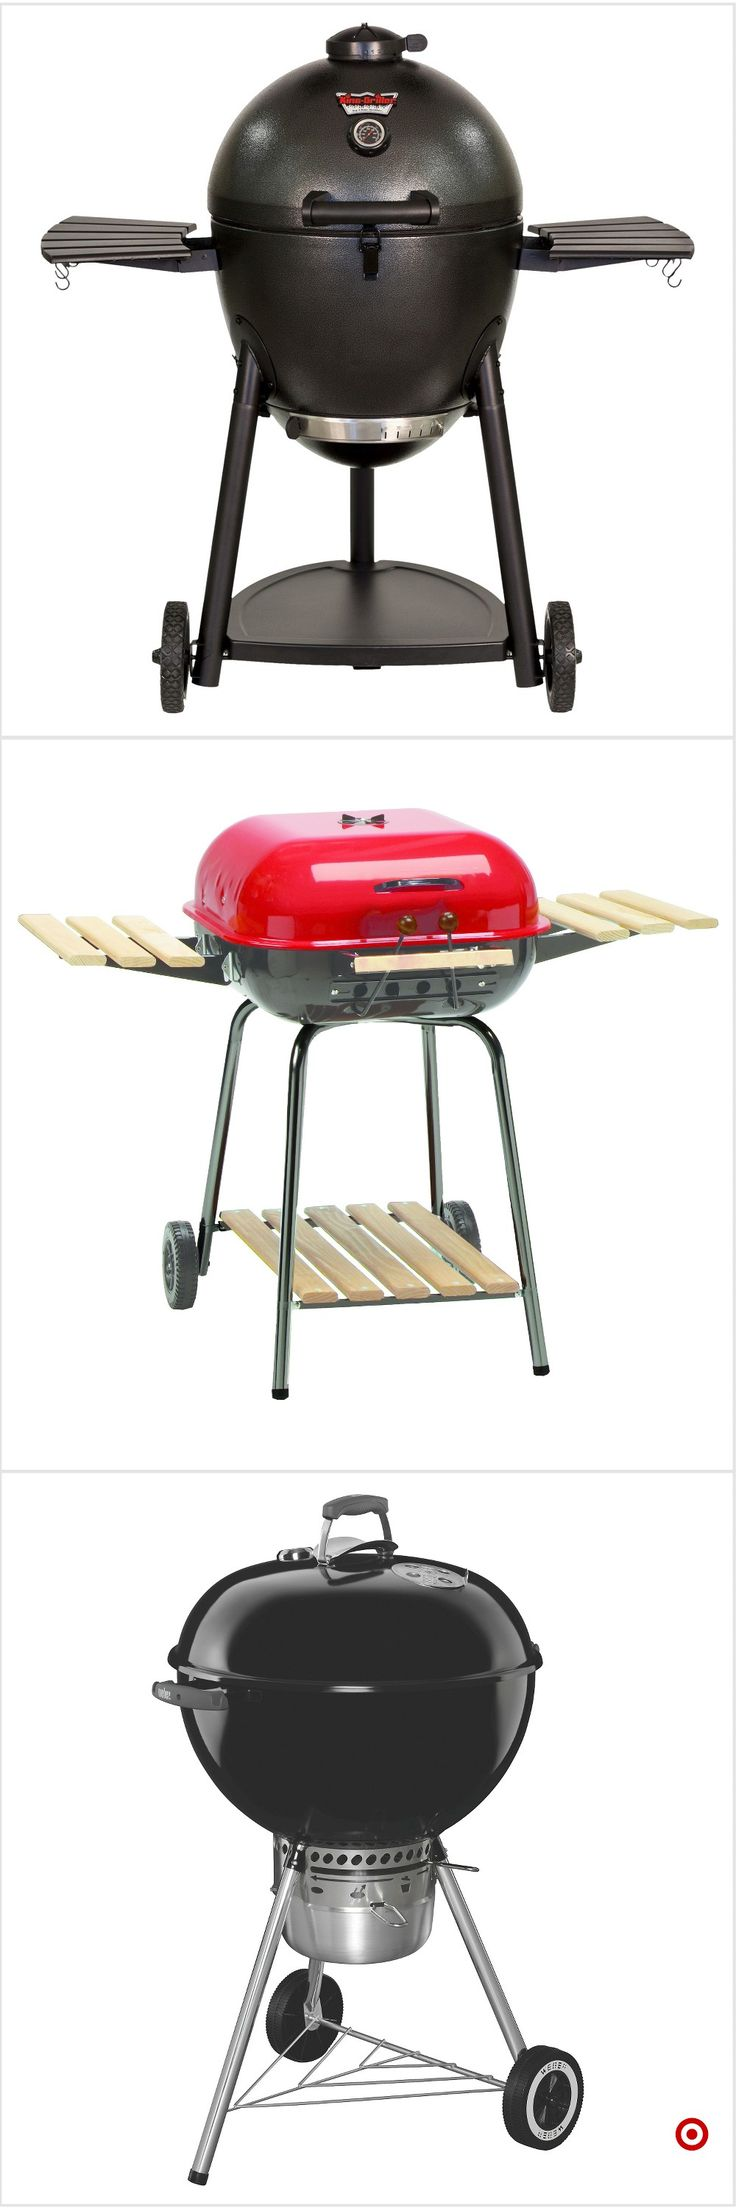 Shop Target for charcoal grill you will love at great low prices. Free shipping on orders of $35+ or free same-day pick-up in store.